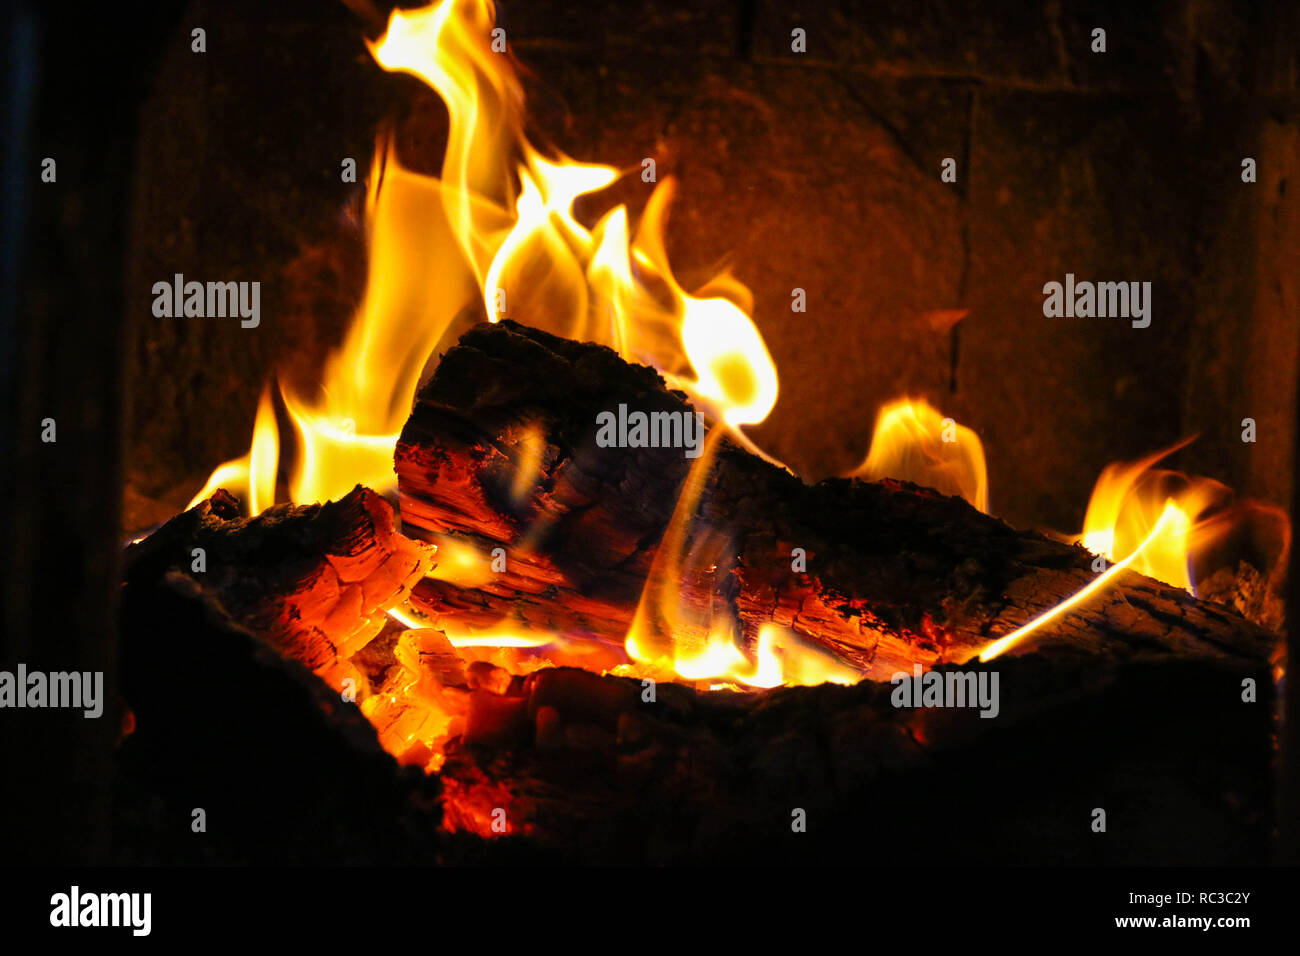 Fire burning in a tiled stove. - Stock Image